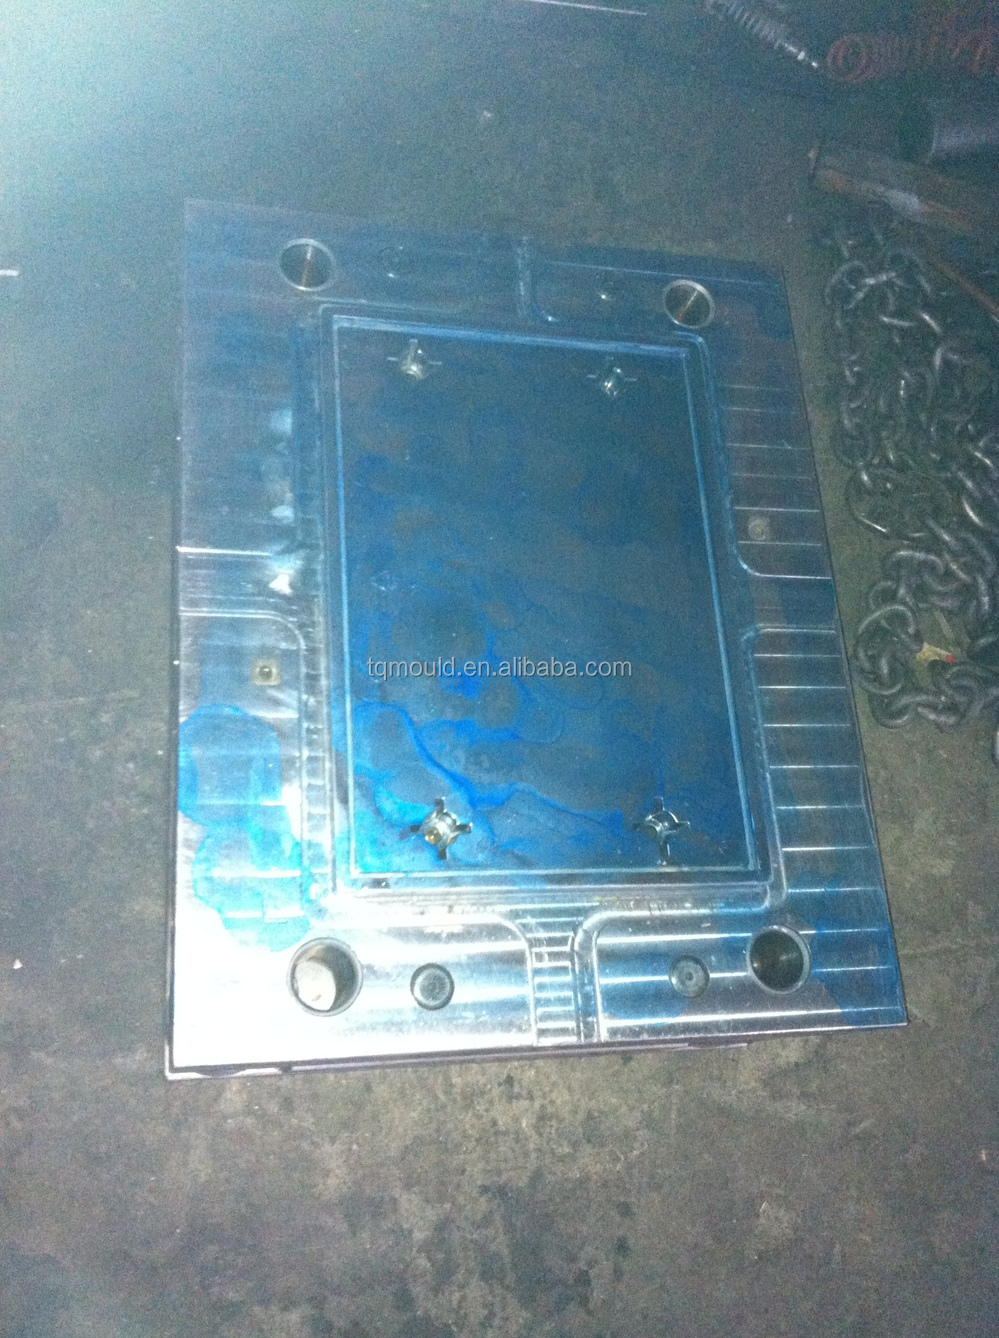 SMC distribution box moulding